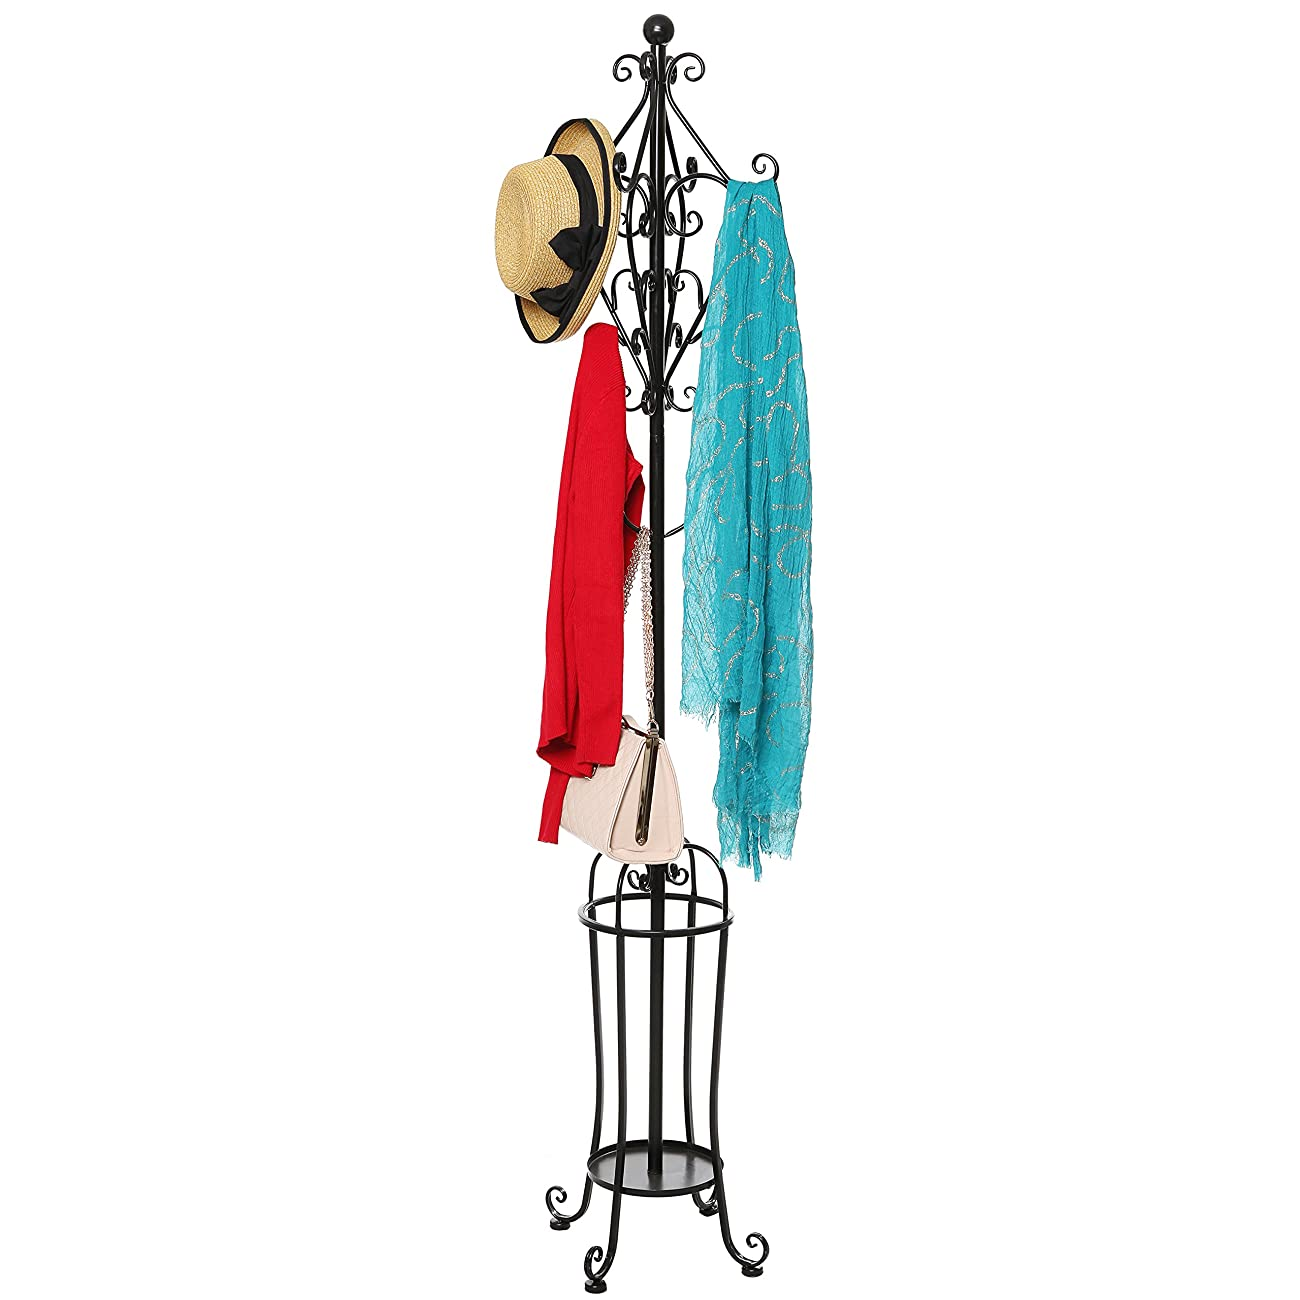 6' Freestanding Vintage Victorian Black Metal Scrollwork Coat Rack / Hat Hook Stand with Umbrella Holder 2